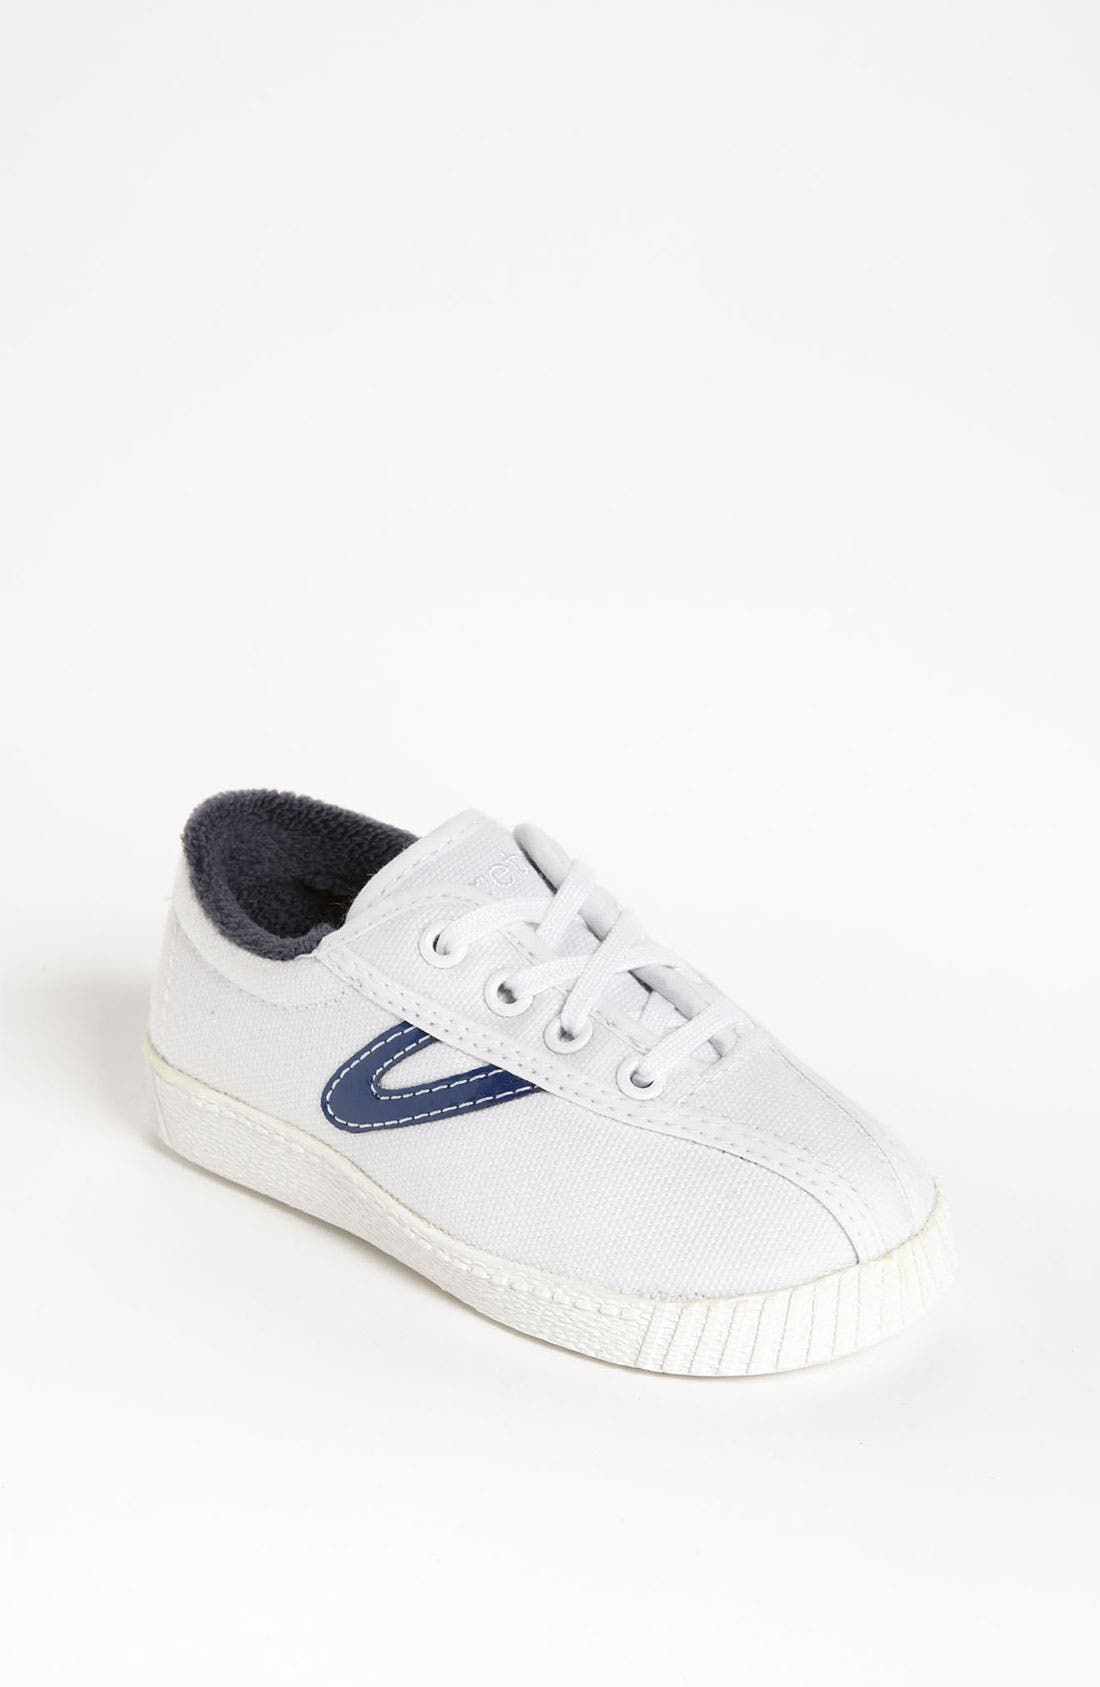 Main Image - Tretorn 'Nylite' Tennis Shoe (Baby, Walker & Toddler)